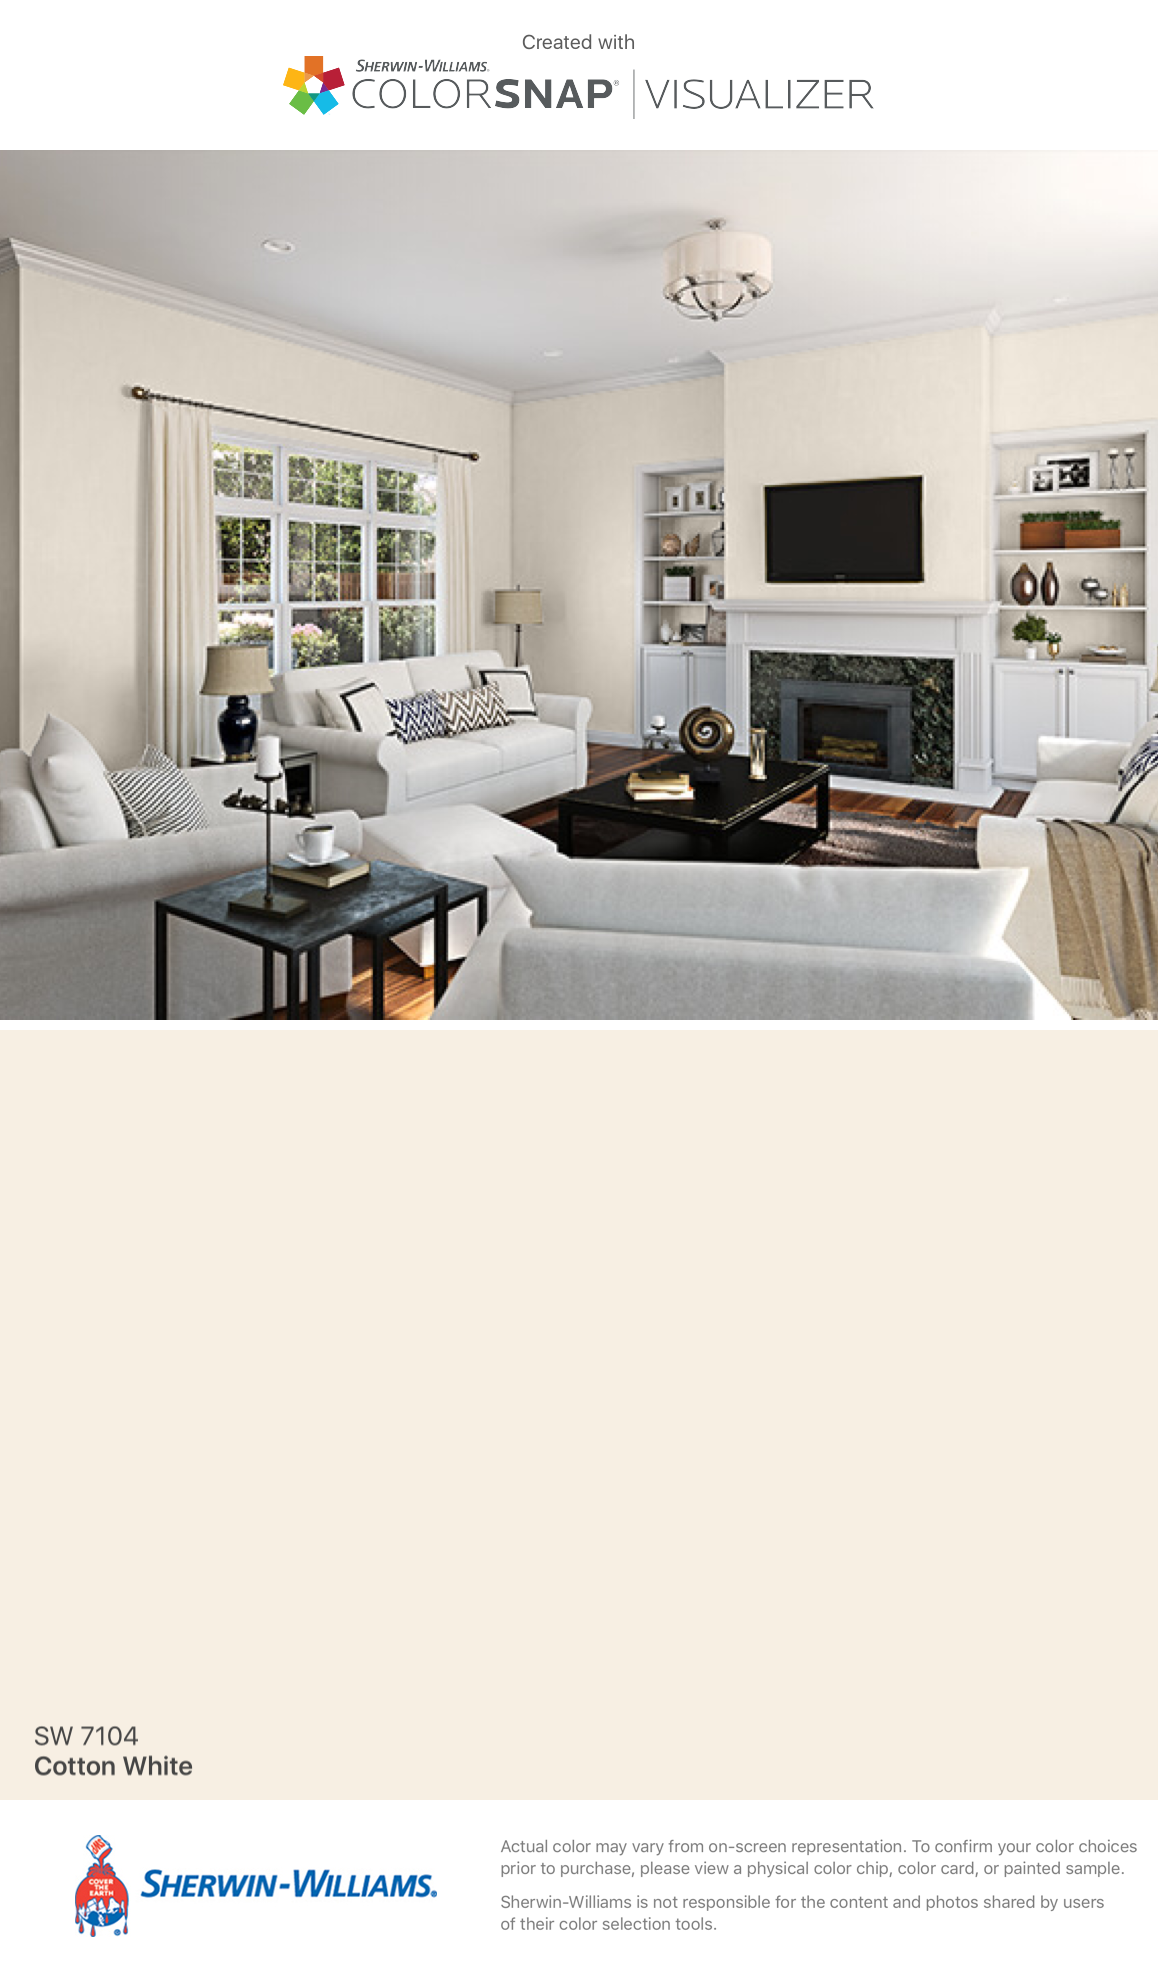 I found this color with colorsnap visualizer for iphone for Sherwin williams cotton white